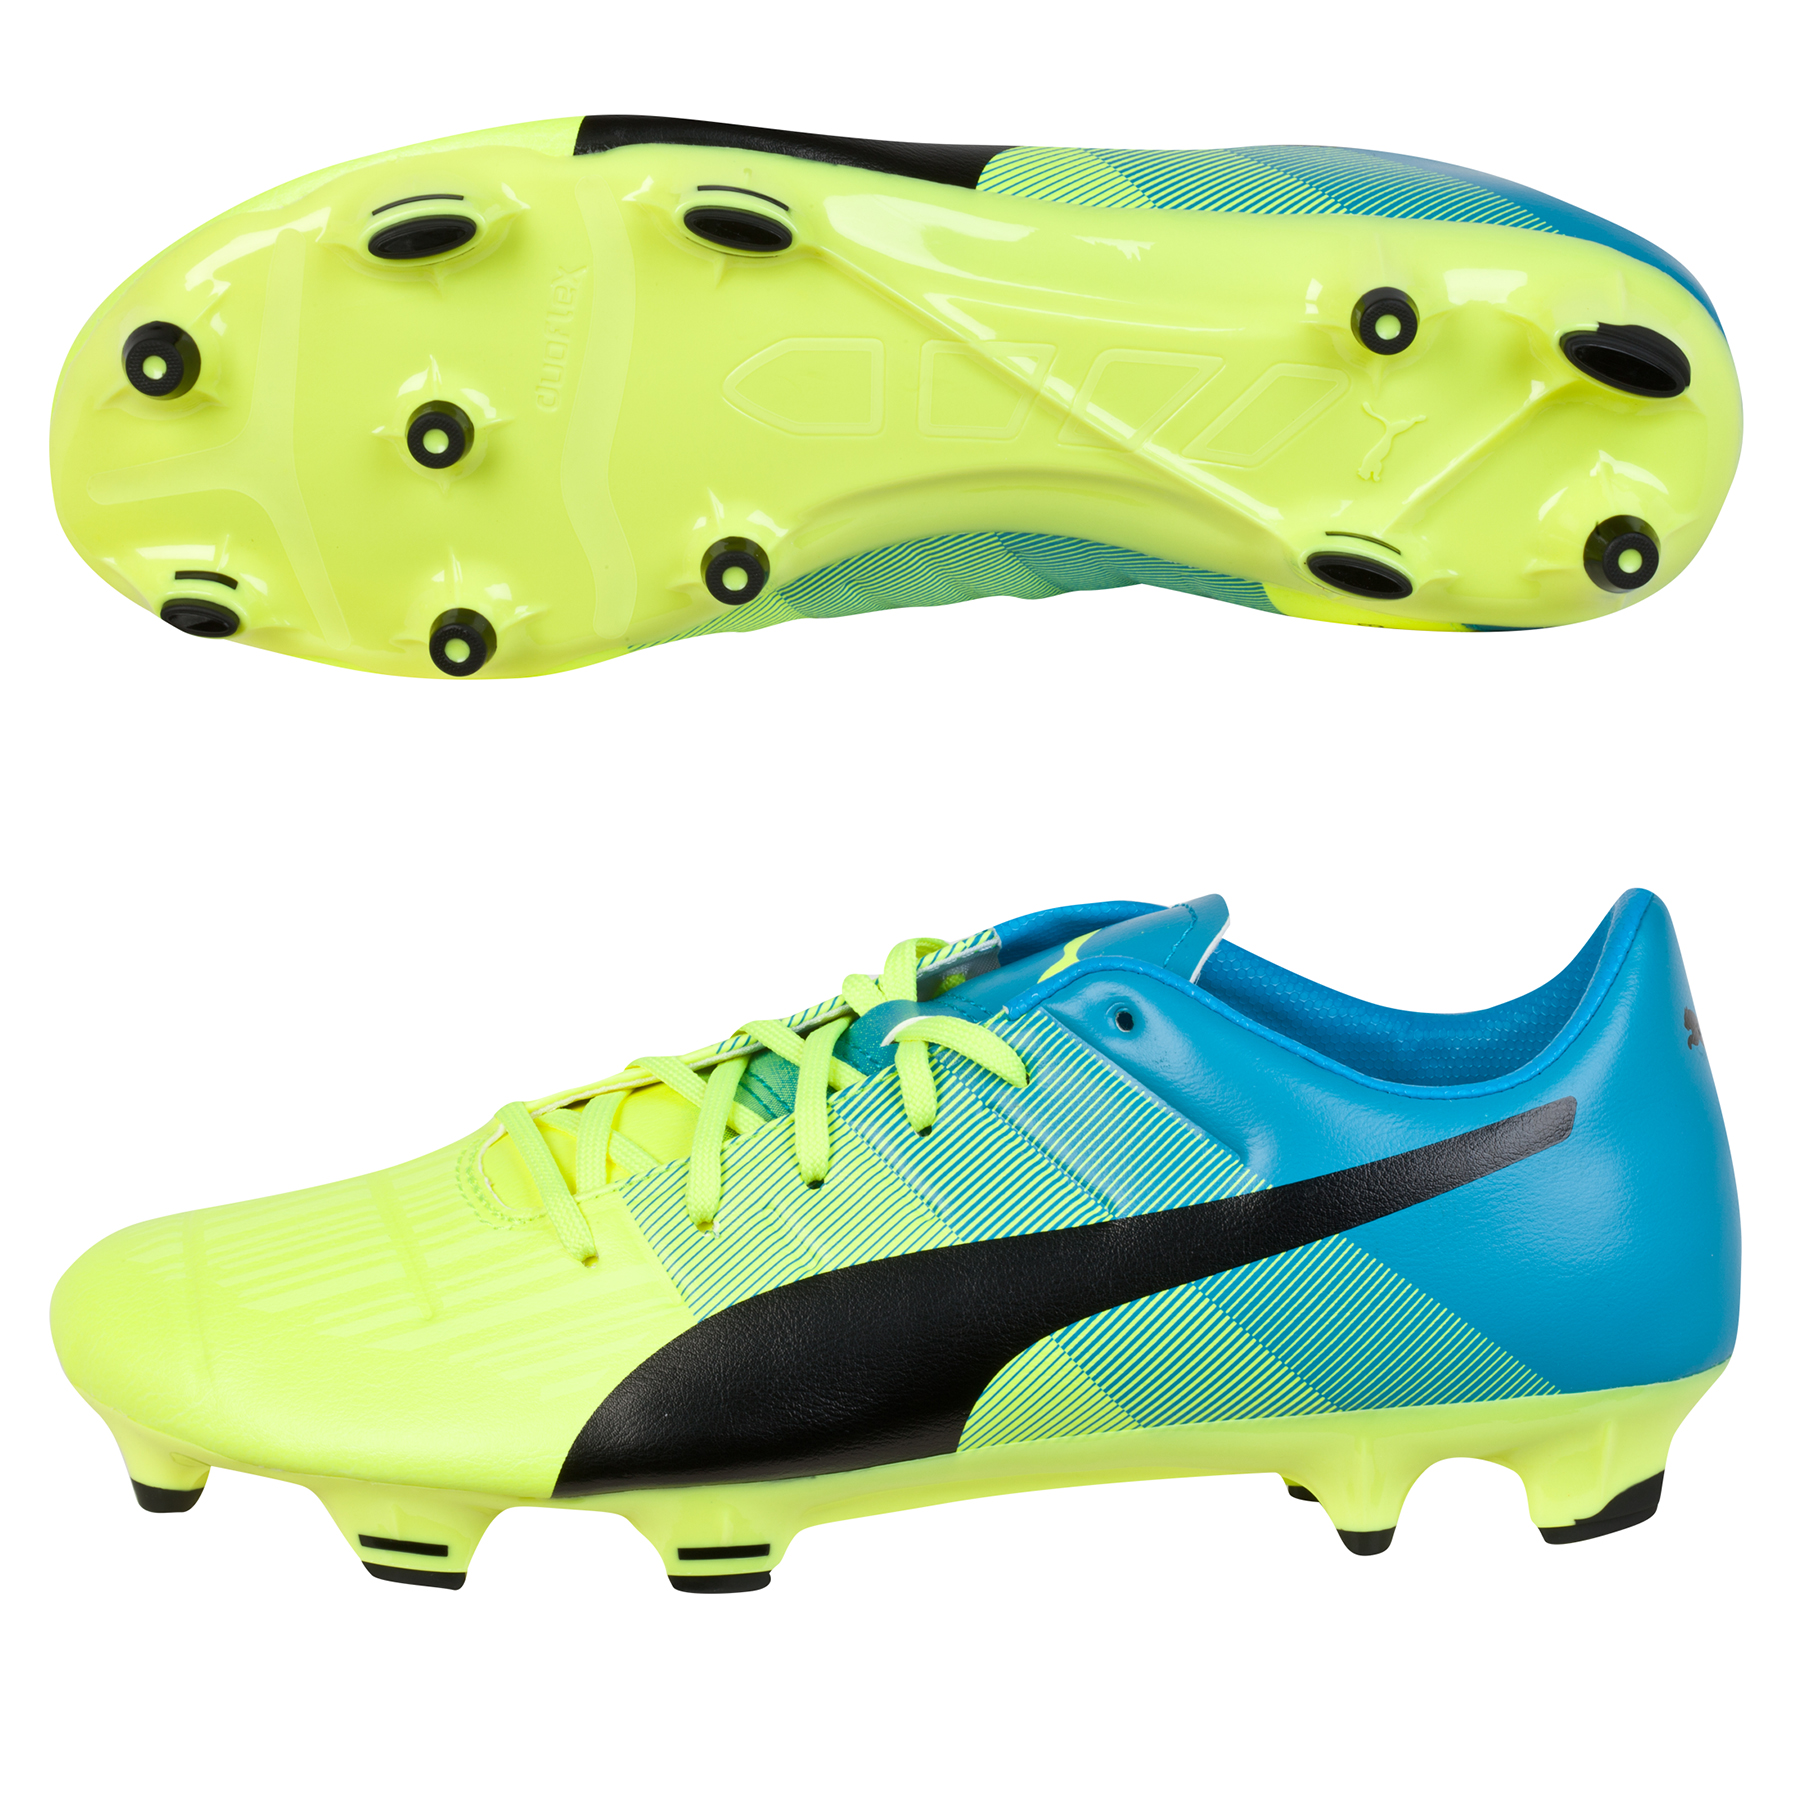 Puma evoPOWER 3.3 FG Yellow